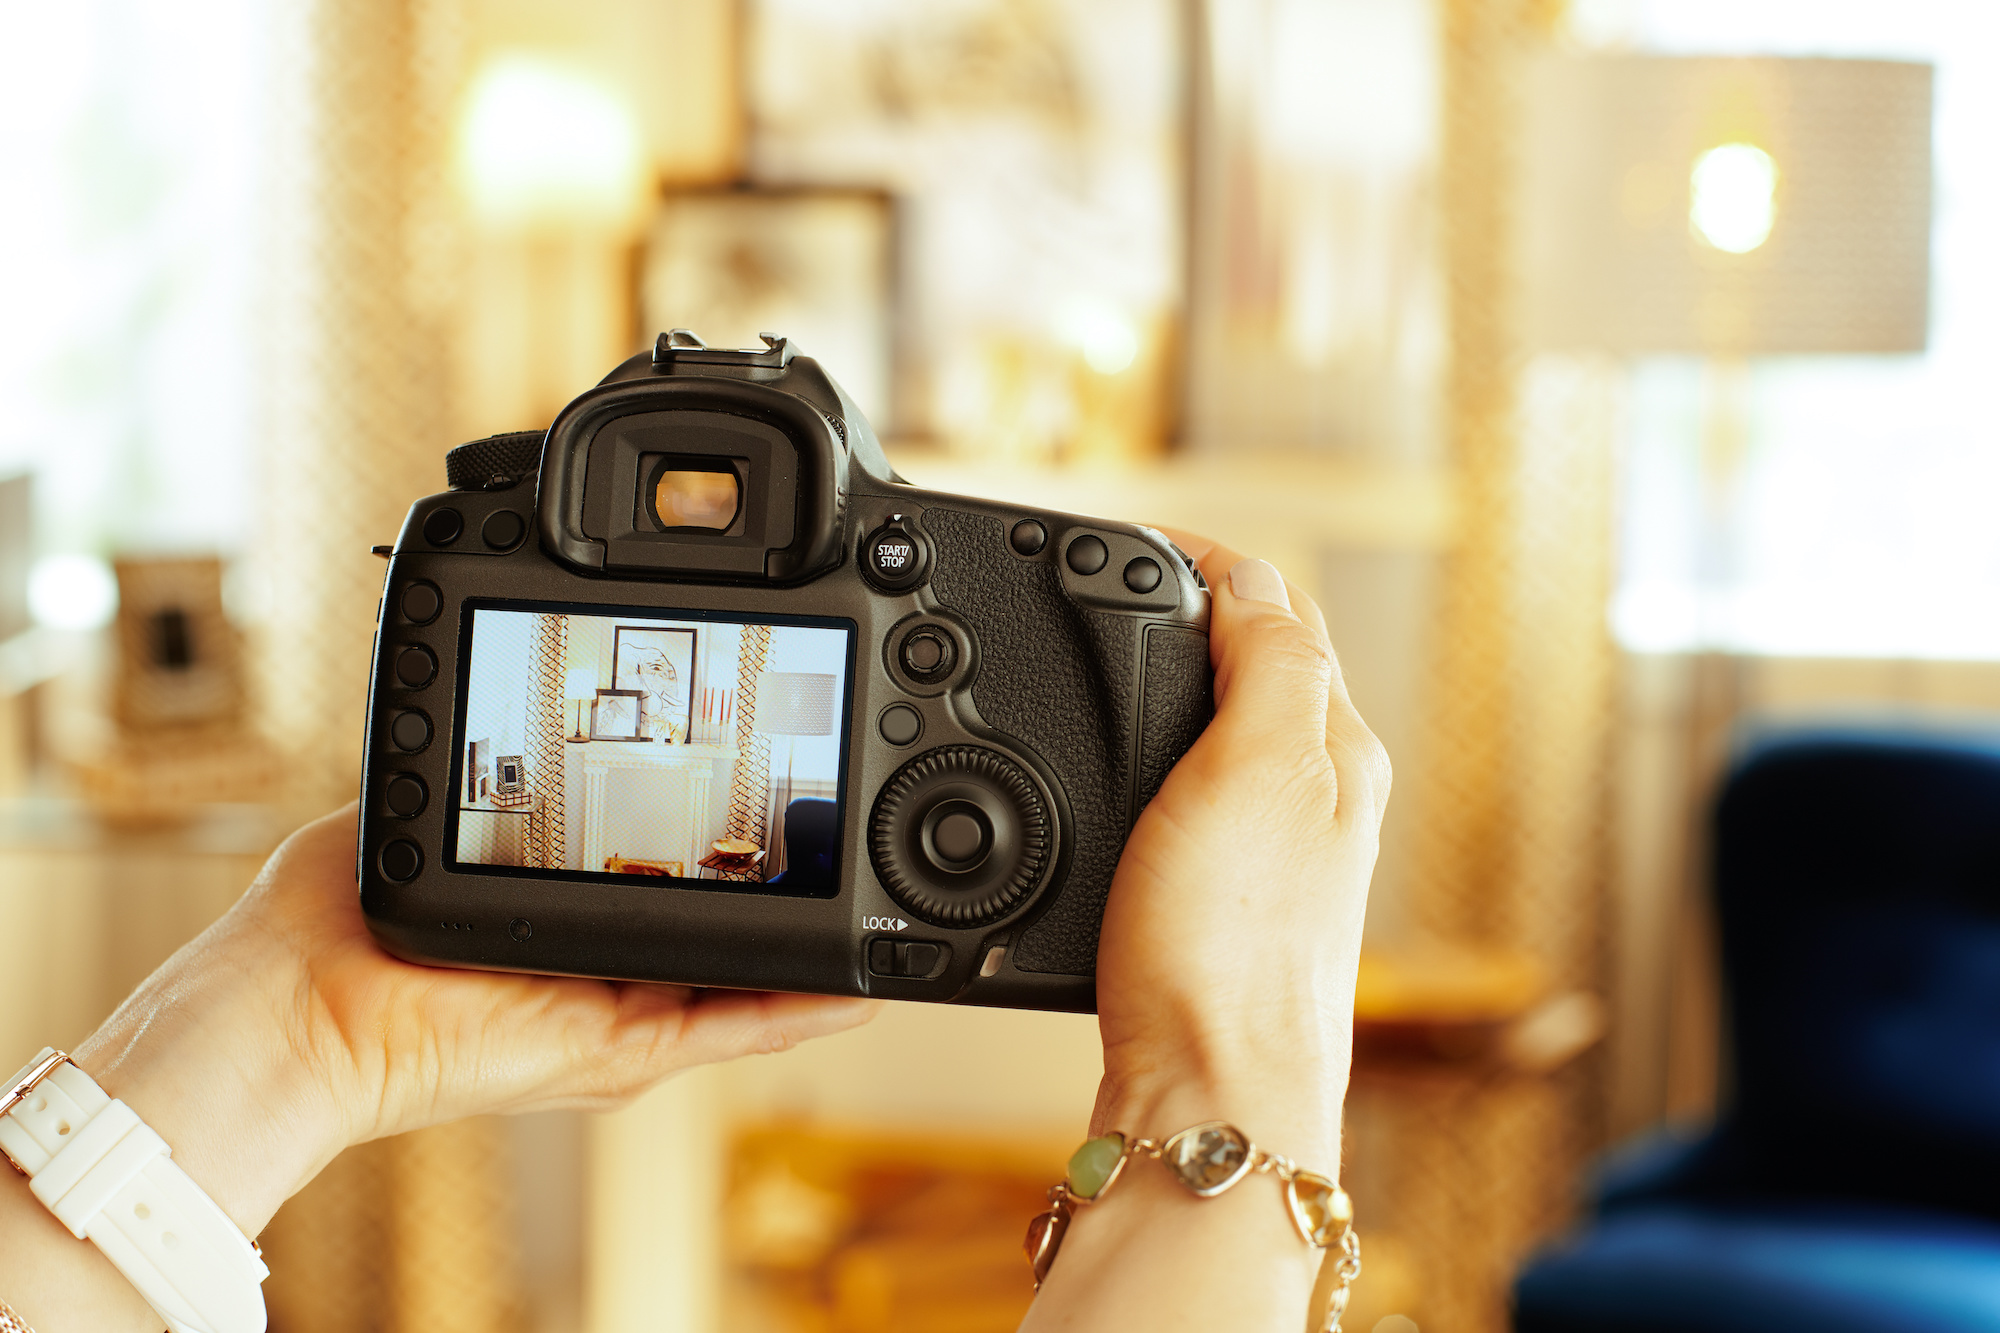 WHY INVEST IN A REAL ESTATE PHOTOGRAPHER